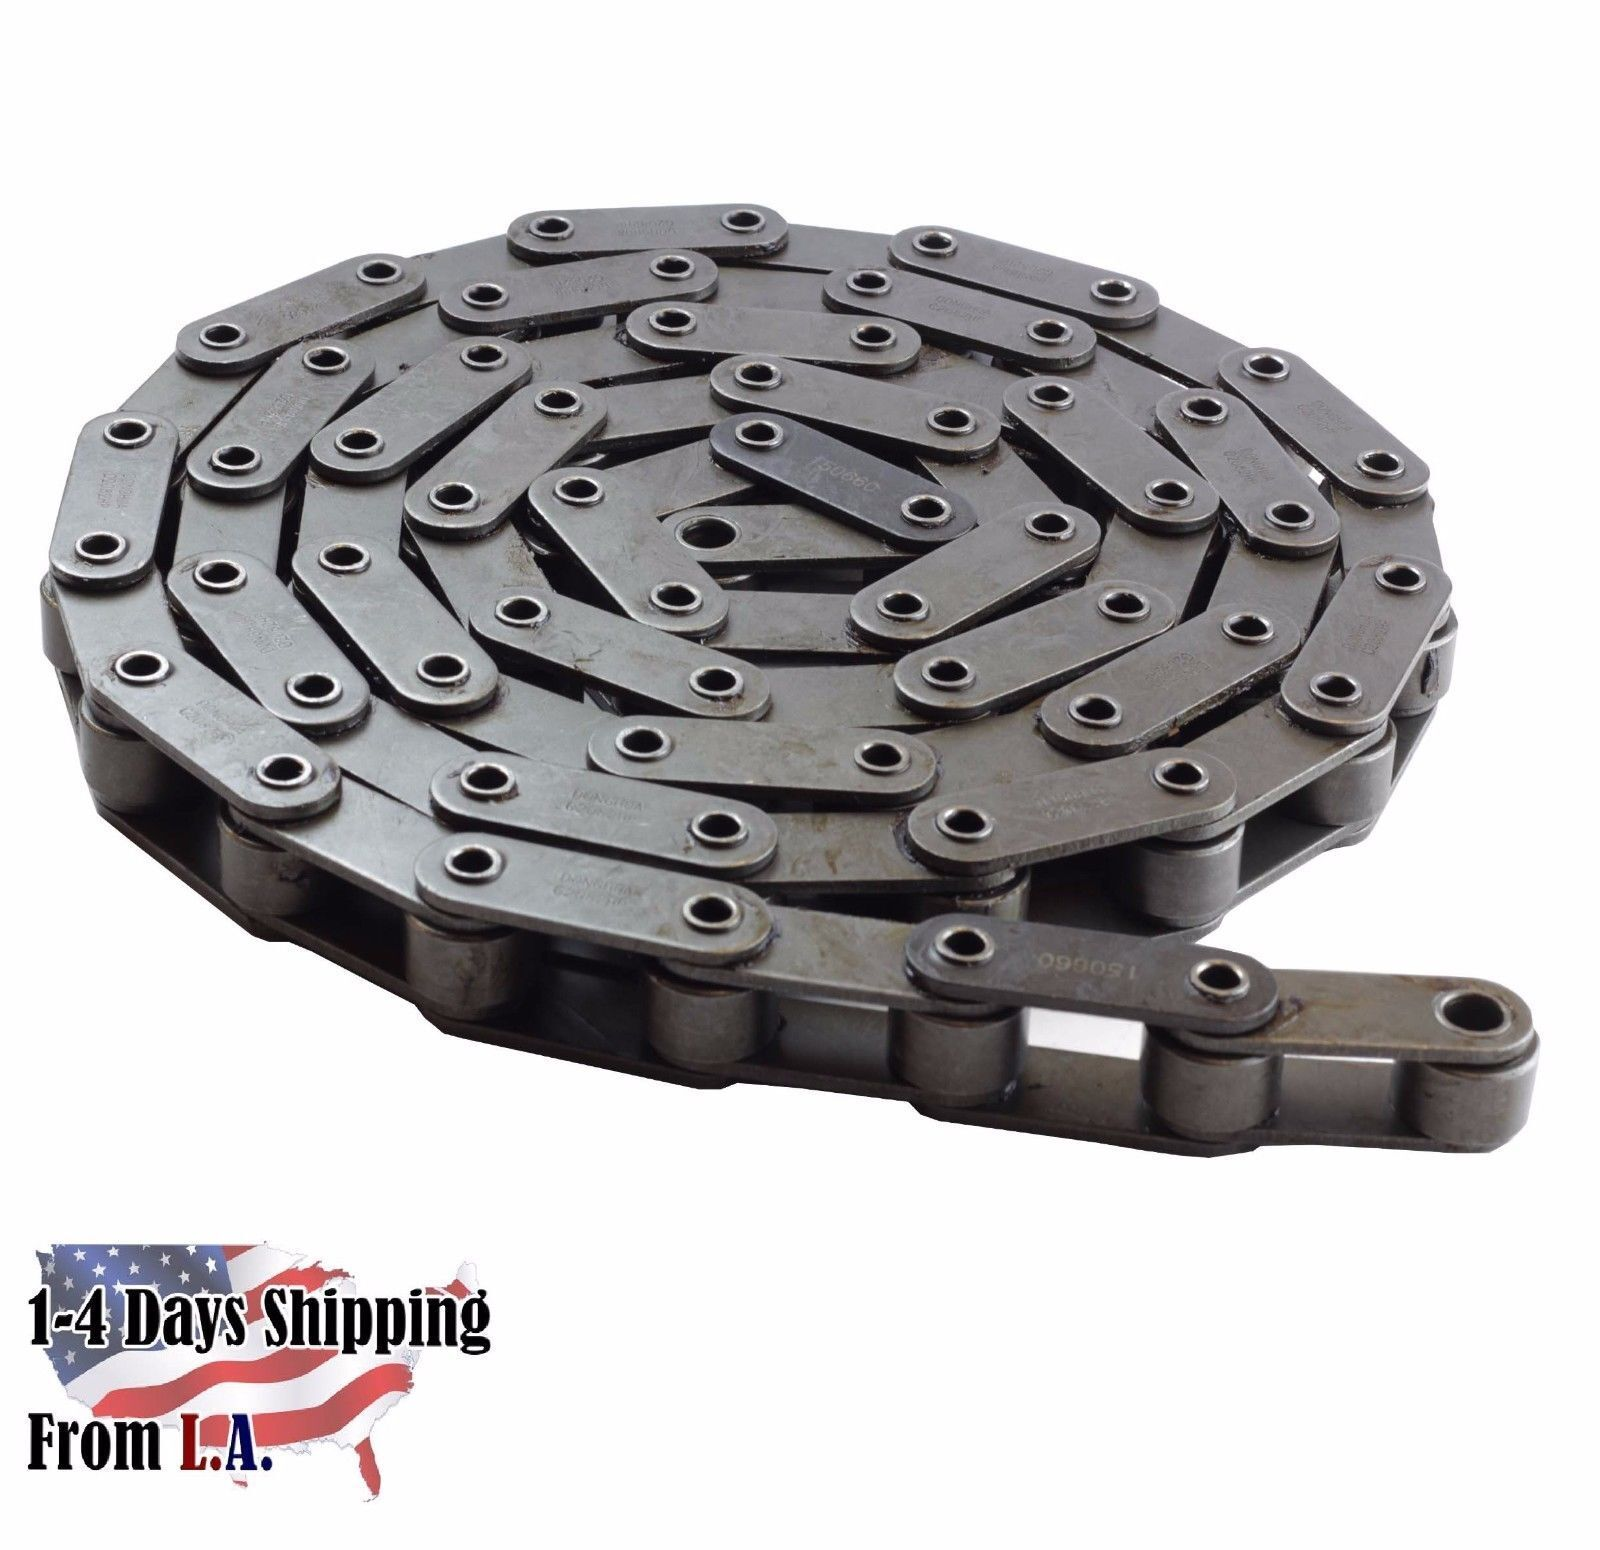 C2082hp Hollow Pin Conveyor Roller Chain 10 Feet With 1 Connecting 52cc Scooterx Power Kart Go Norton Secured Powered By Verisign